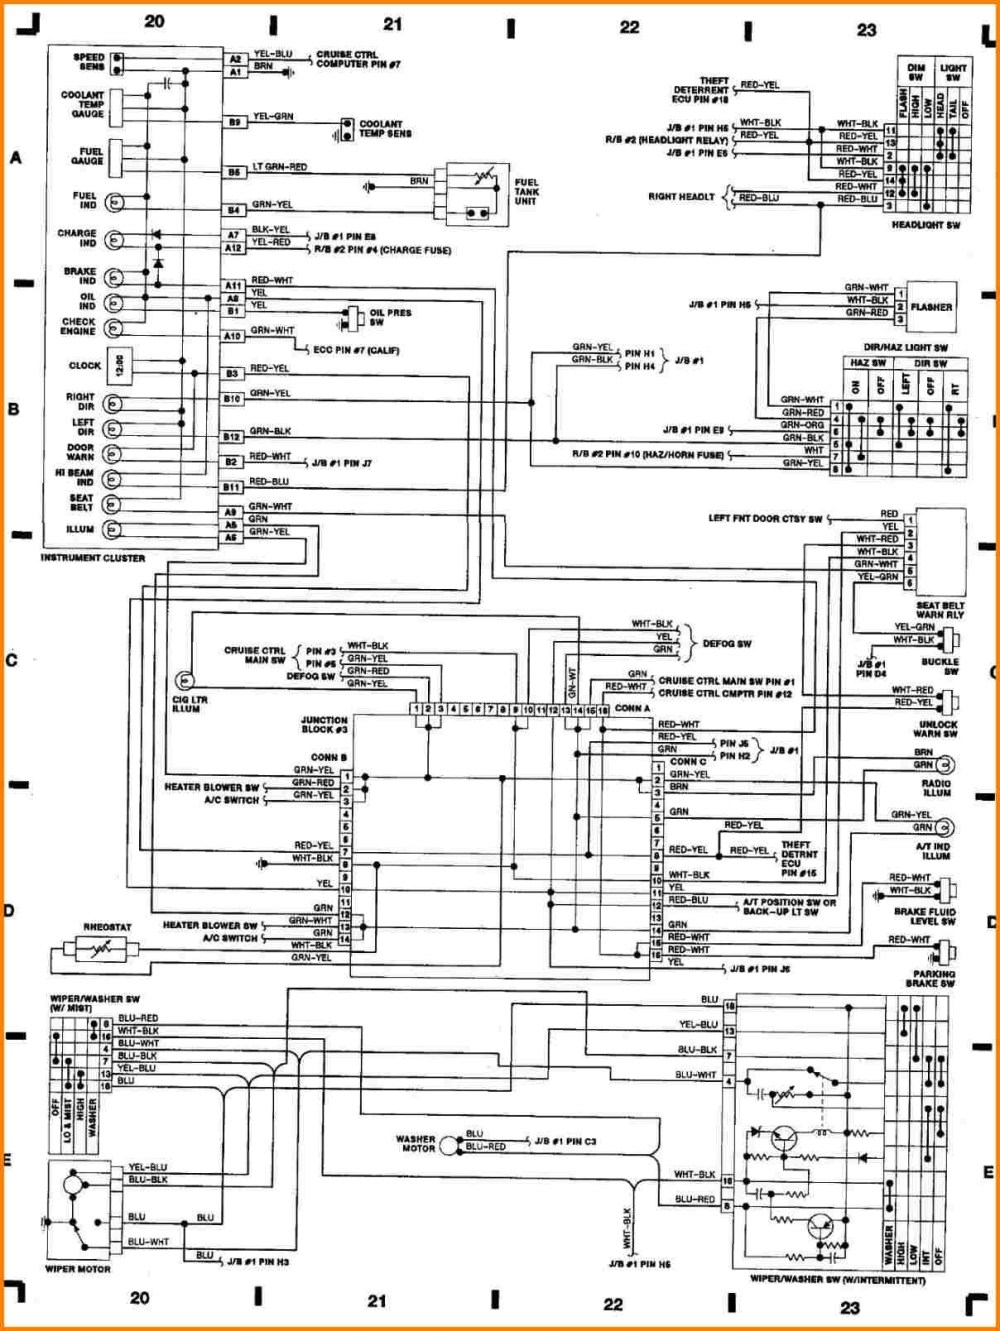 medium resolution of 2012 toyota wiring diagrams blog wiring diagram 2012 toyota tacoma wiring diagram 2012 toyota tundra wiring